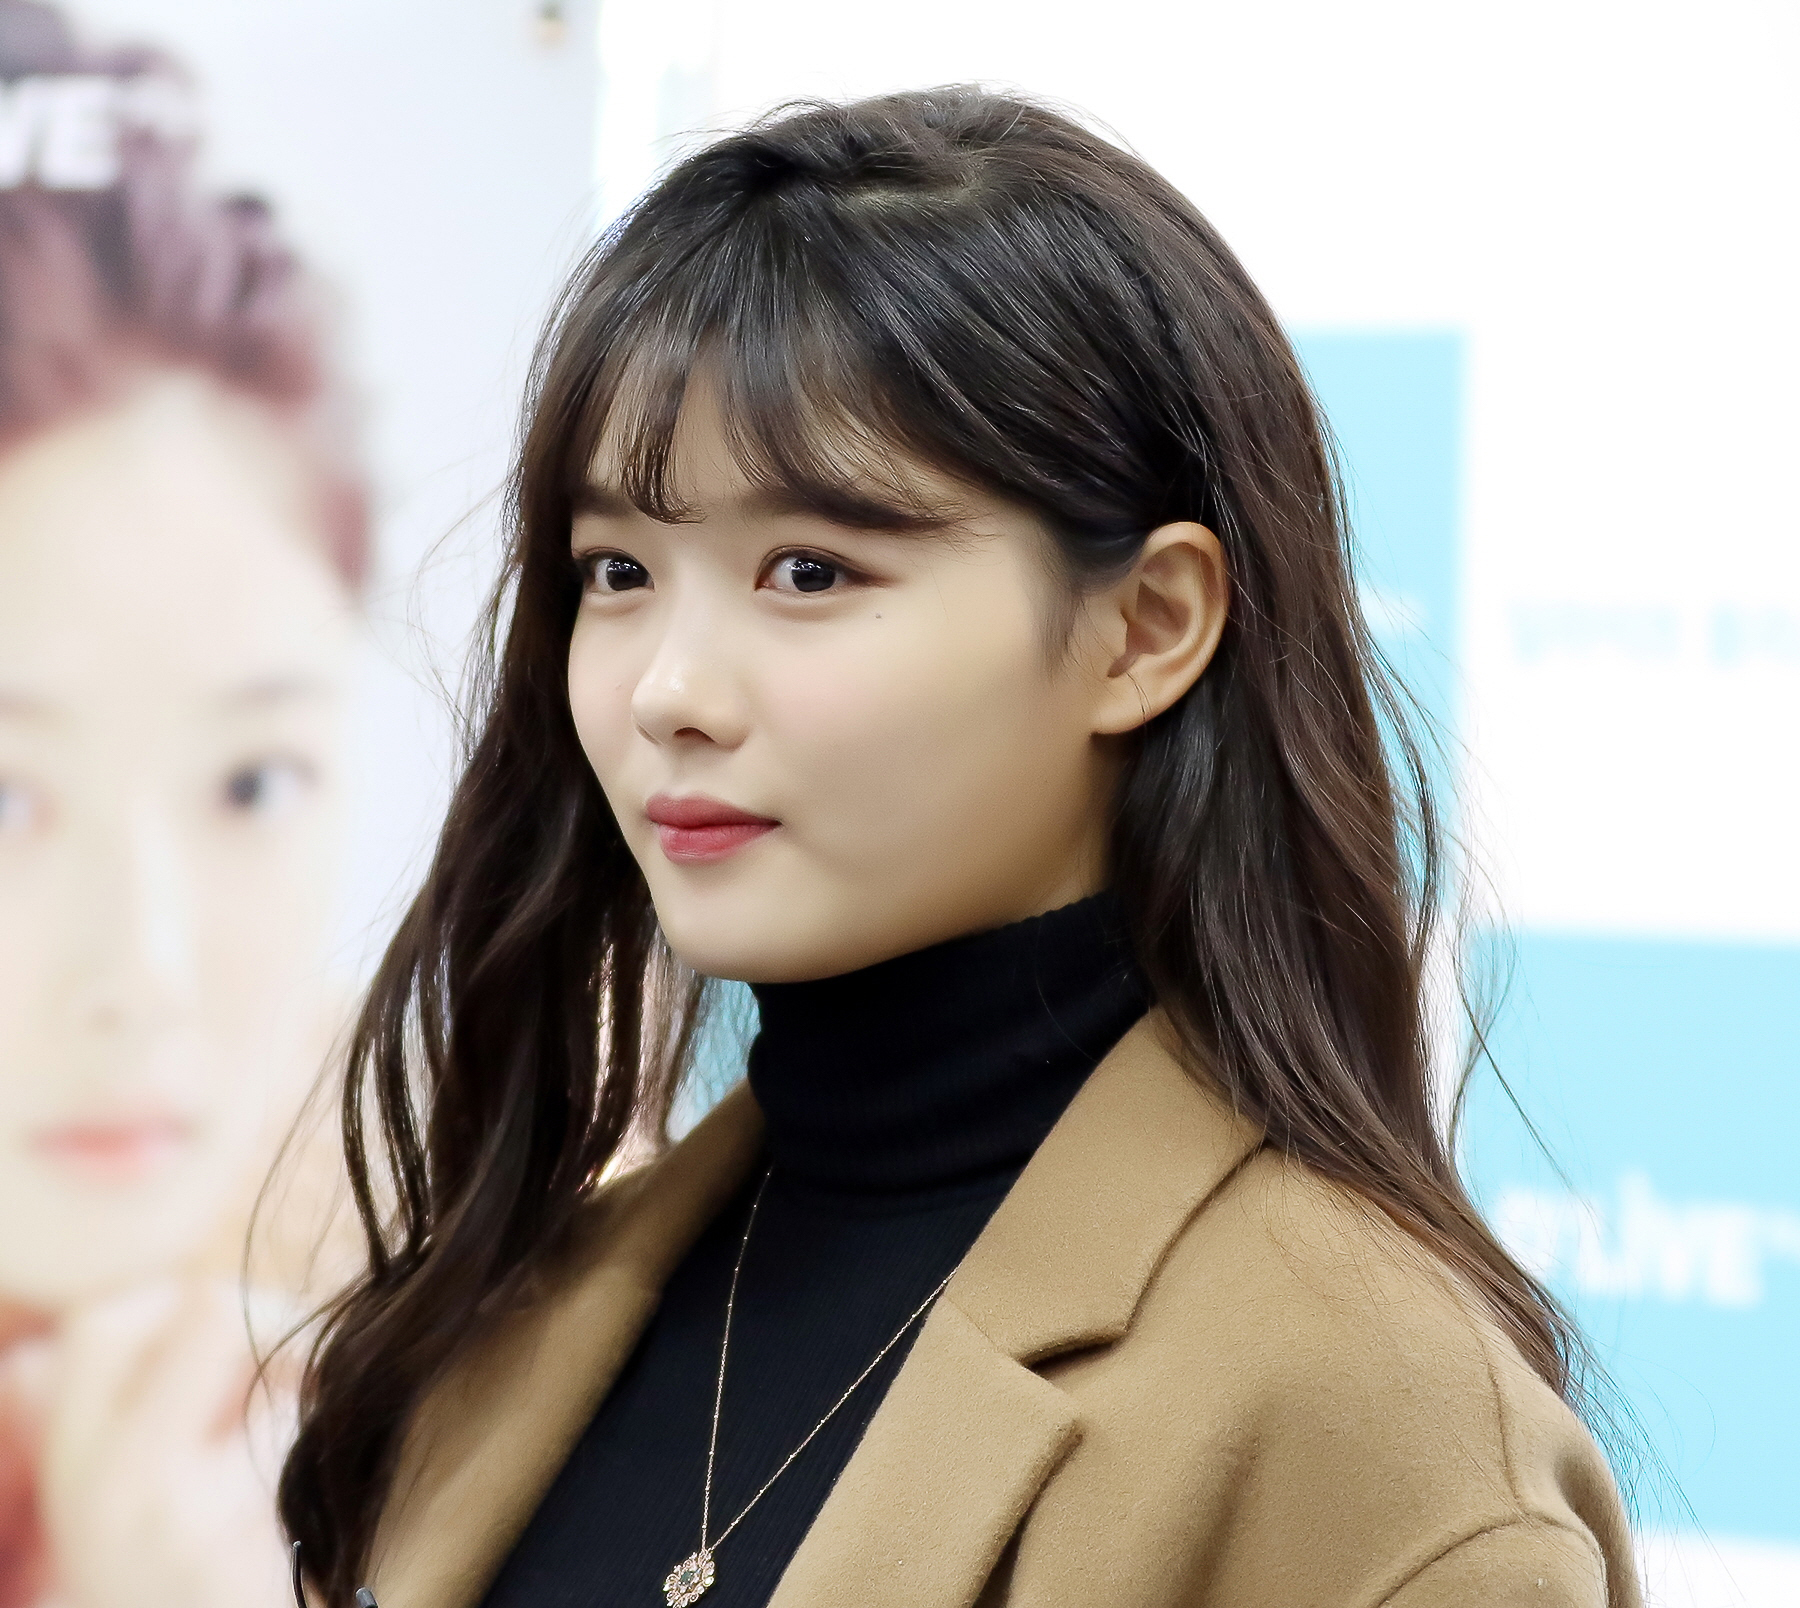 Kim Yoo-jung to take a break from acting, due to health problems